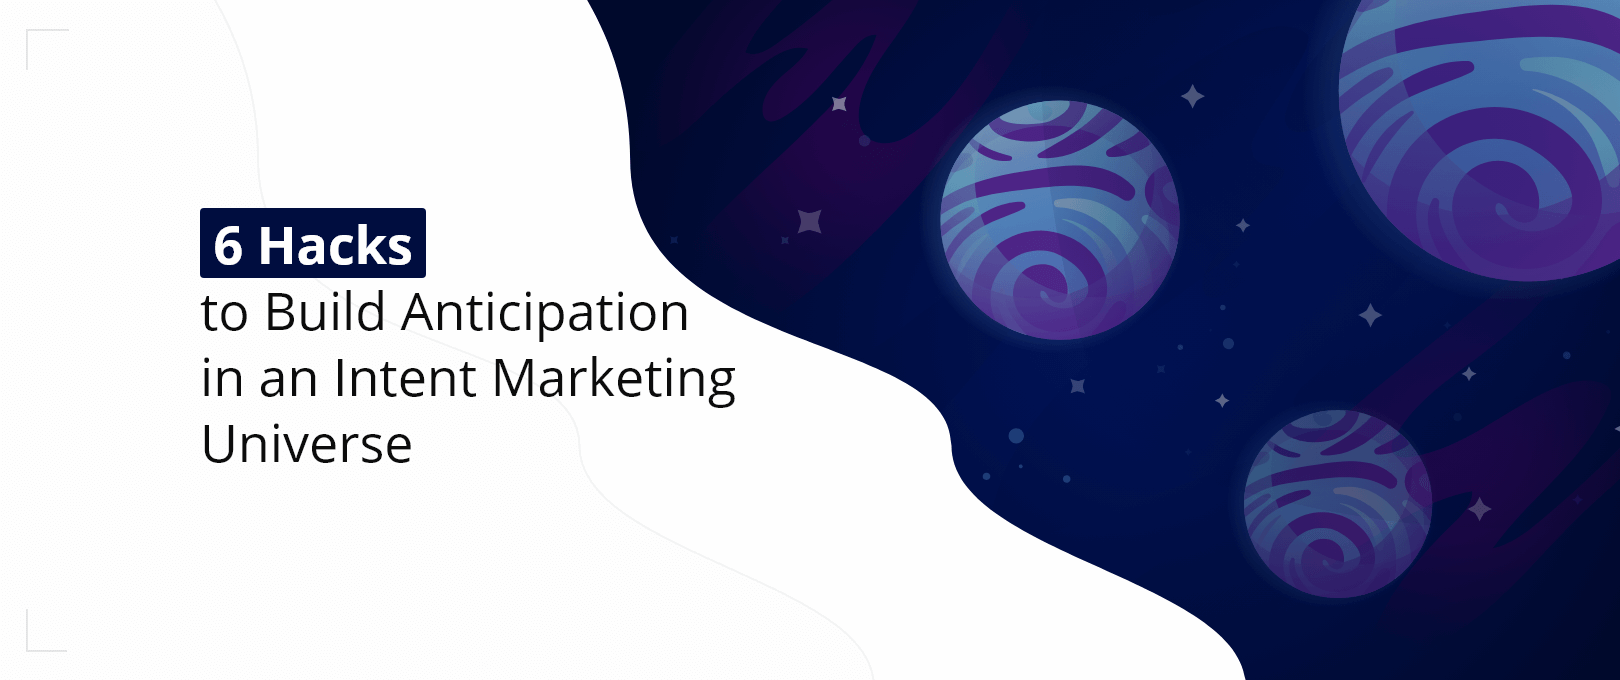 Build Anticipation Intent Marketing